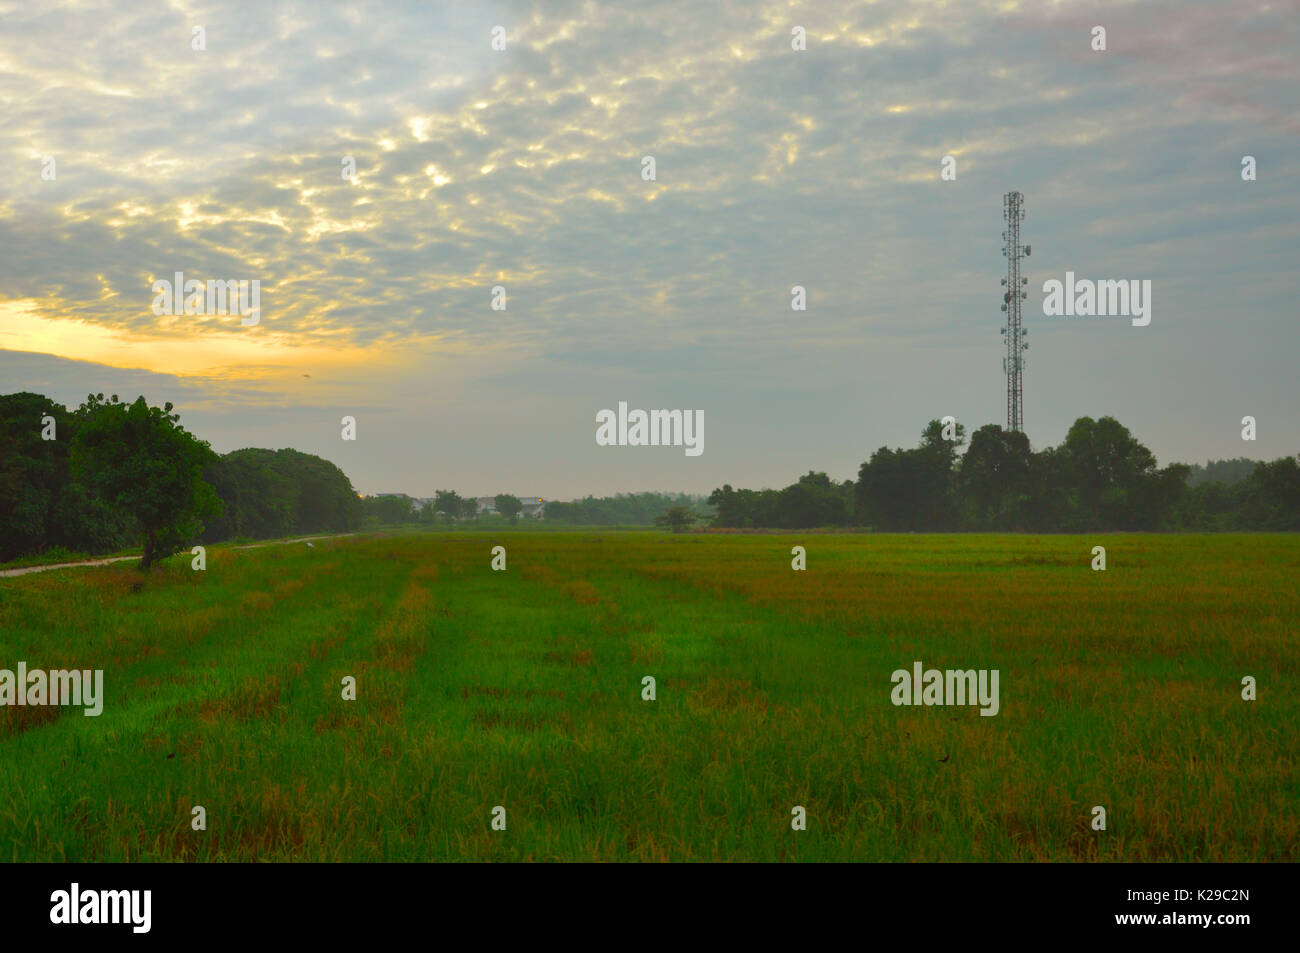 Voir site rural Photo Stock